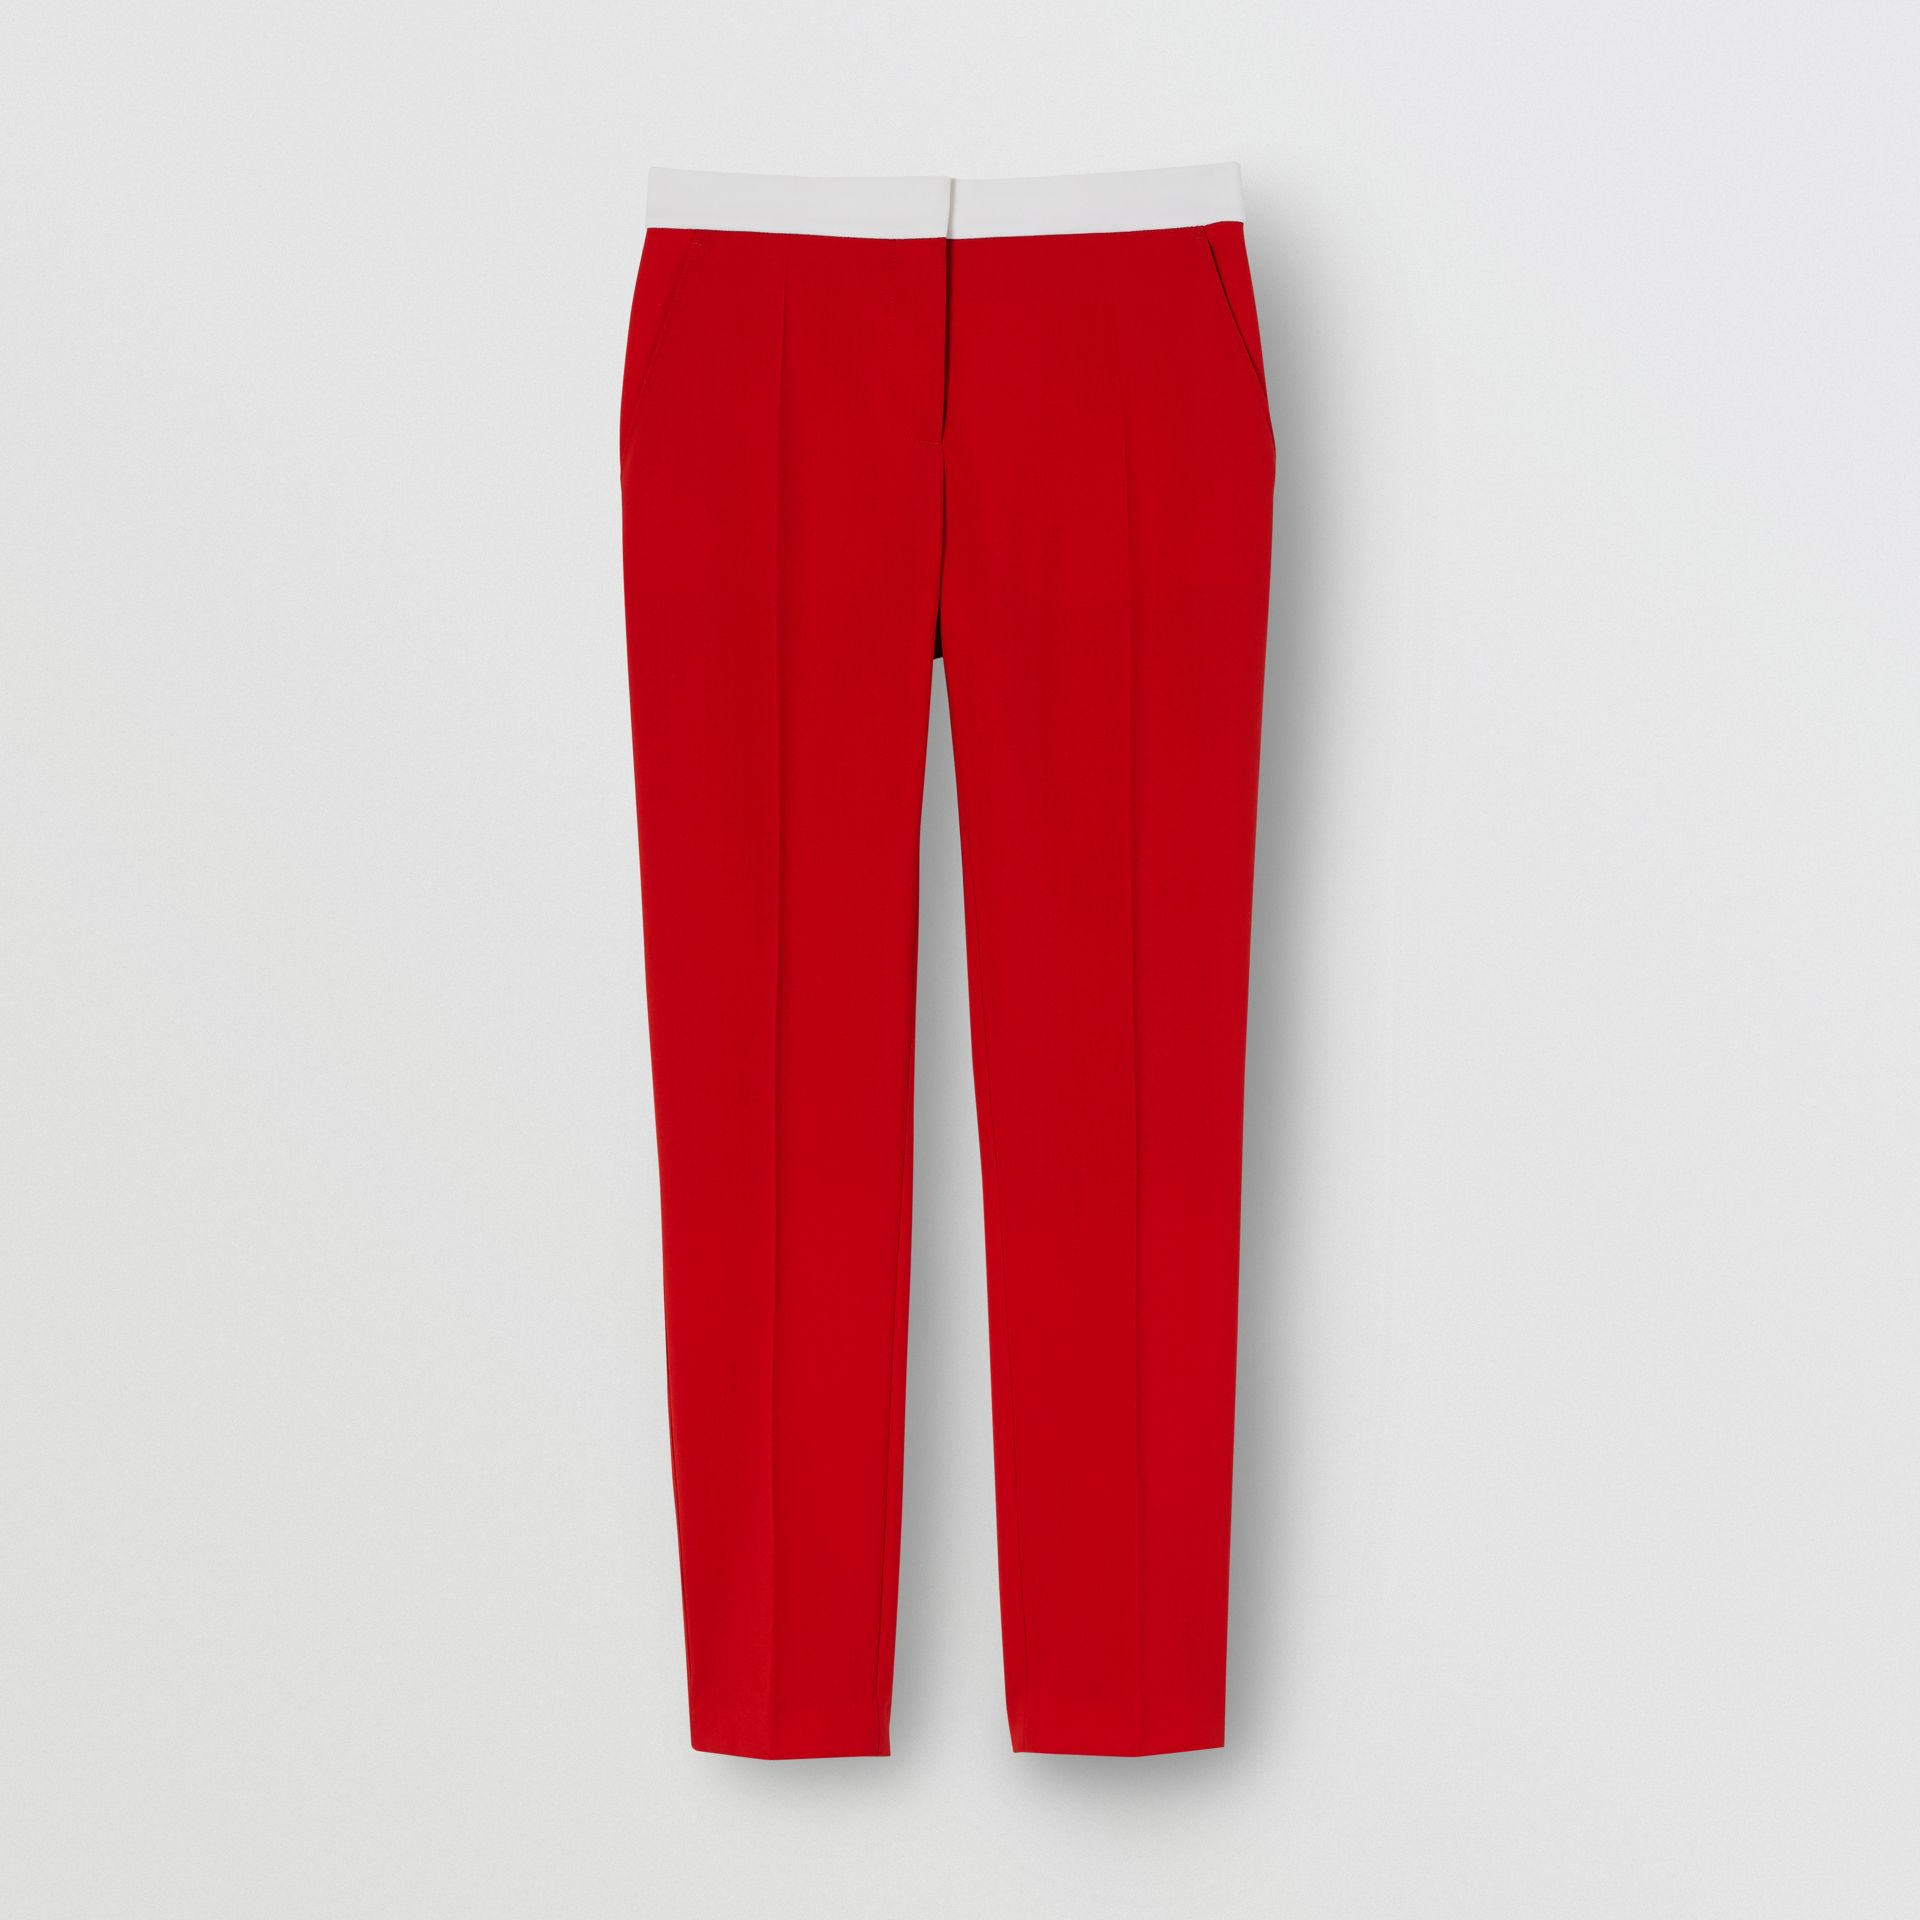 Two-tone Wool Tailored Trousers in Bright Red - Women | Burberry United States - gallery image 3